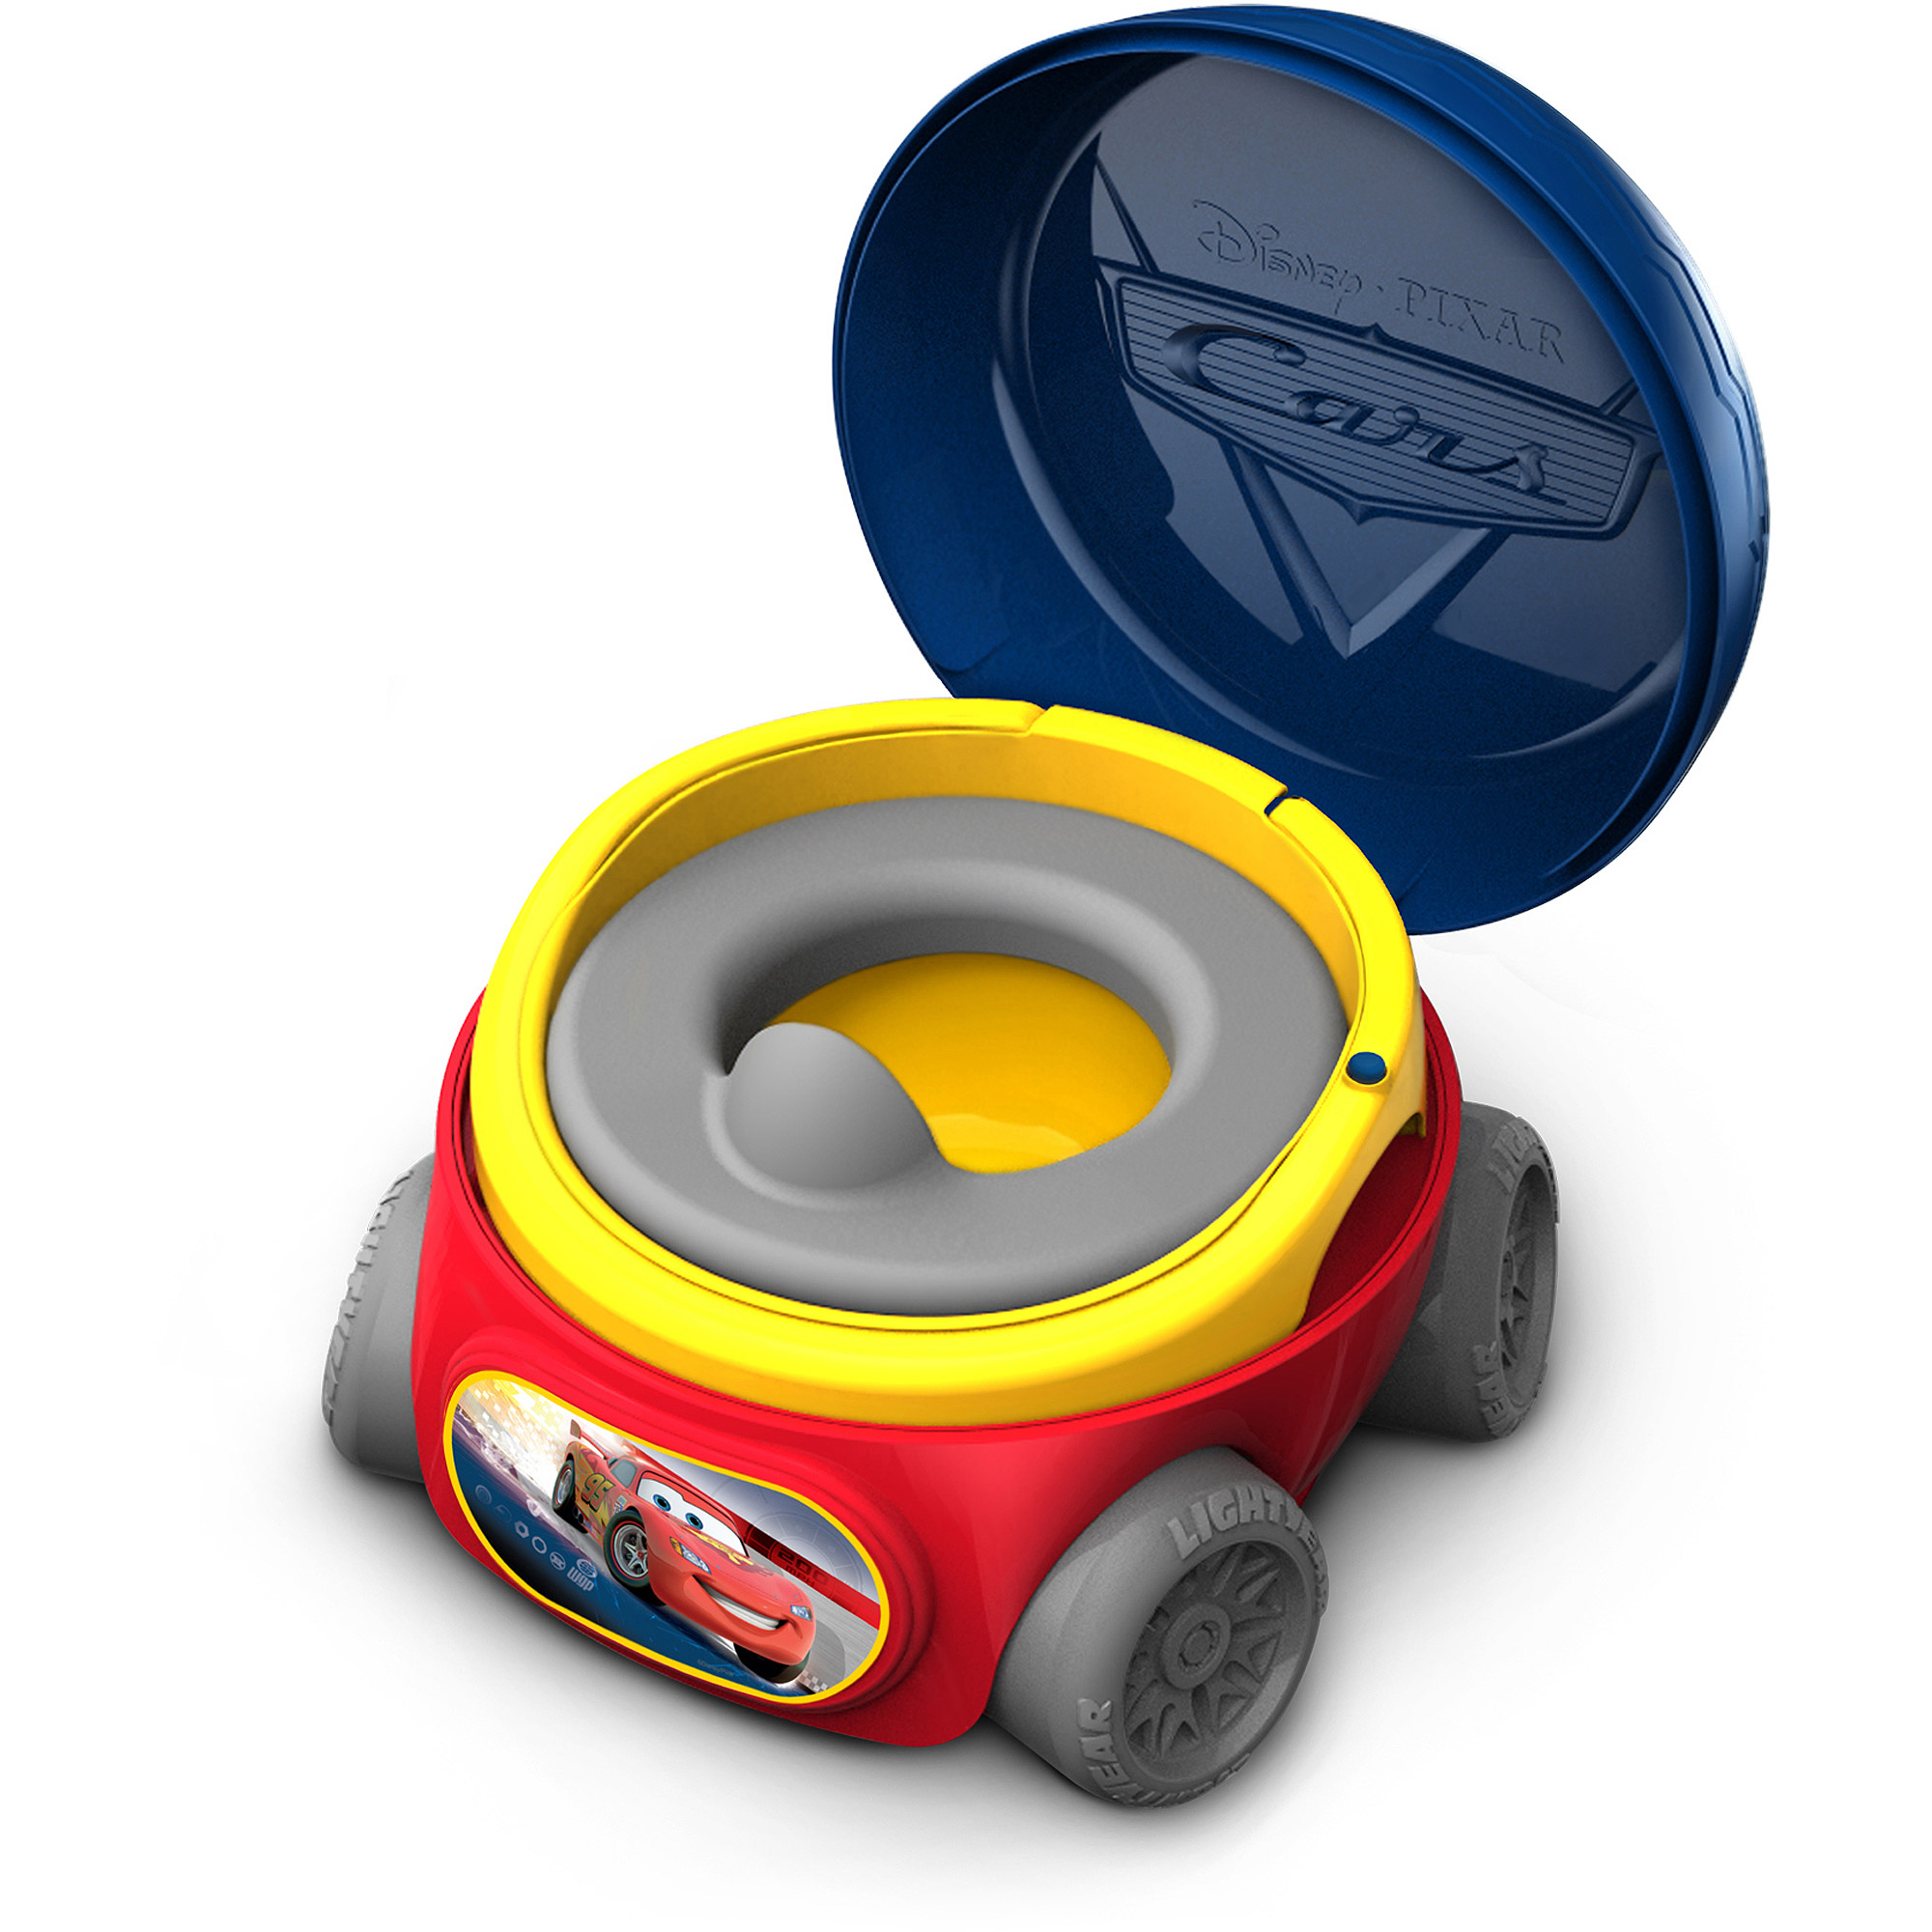 The First Years Disney Cars 3-in-1 Potty System